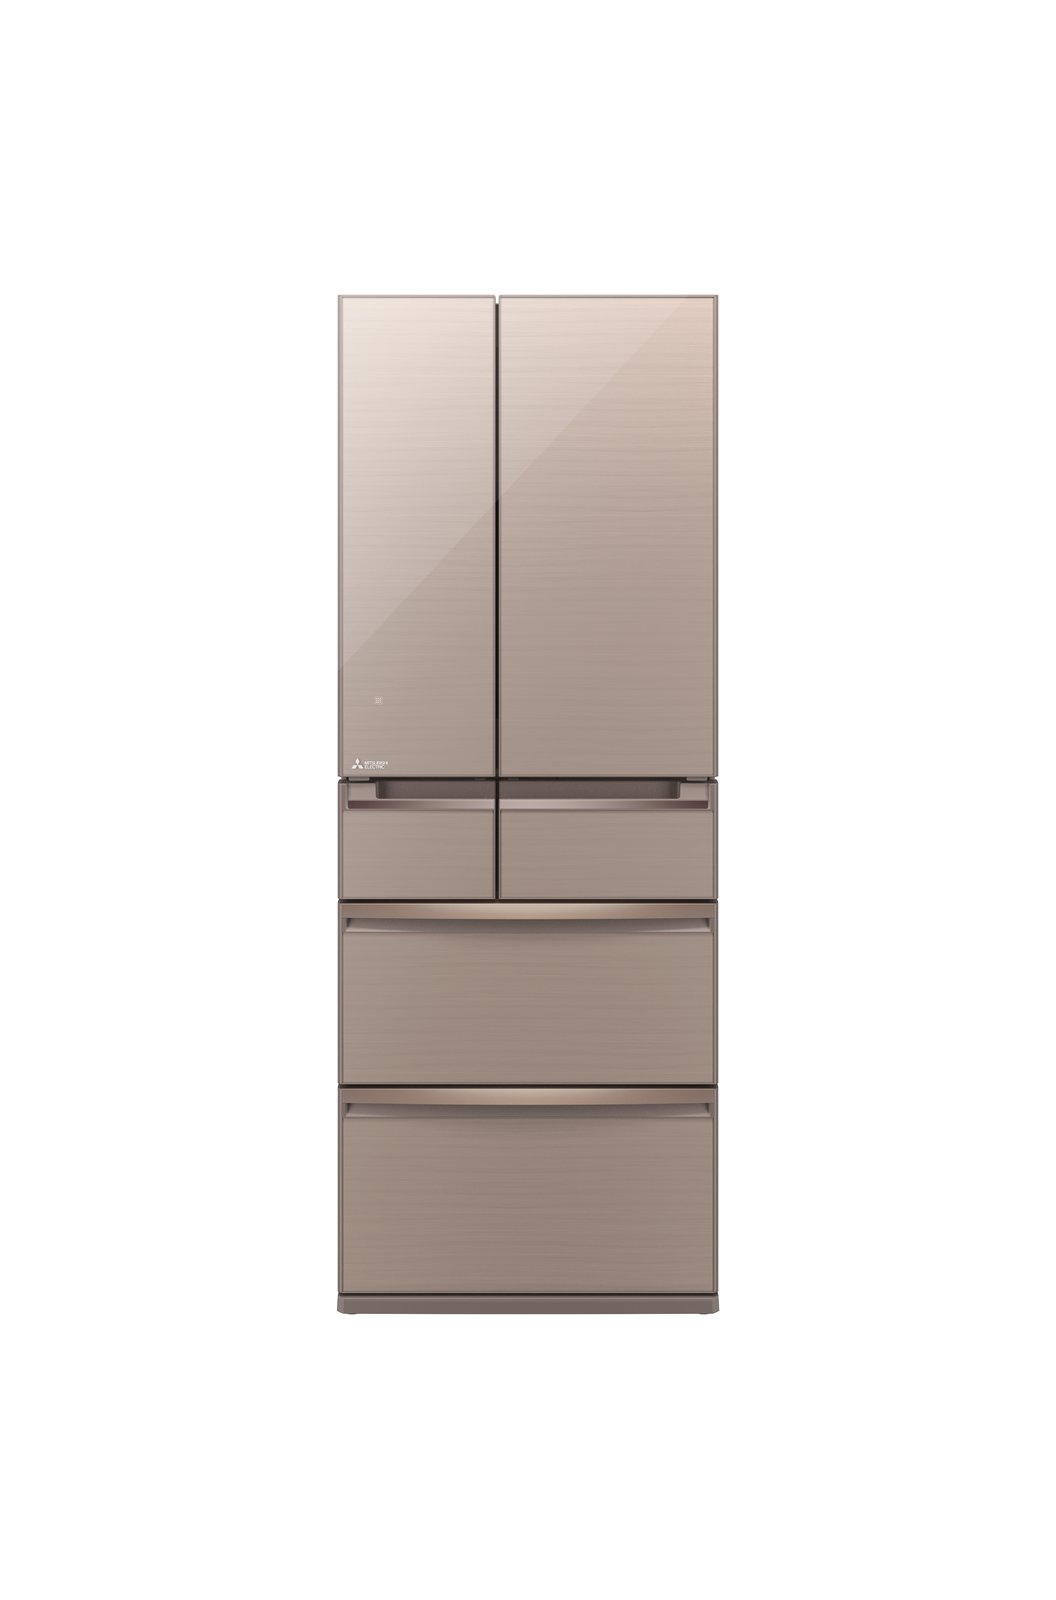 """These new fridges also use a new type of polyurethane that's thinner and lighter than that on traditional models, which means more room on the interior with a smaller overall footprint. For now, these refrigerators will only be available in Japan or via import by August 2014, but expect a variation to appear stateside soon.  Search """"kitchenappliances--refrigerator"""" from Supercooling Freezers—The Future of Refrigerators?"""